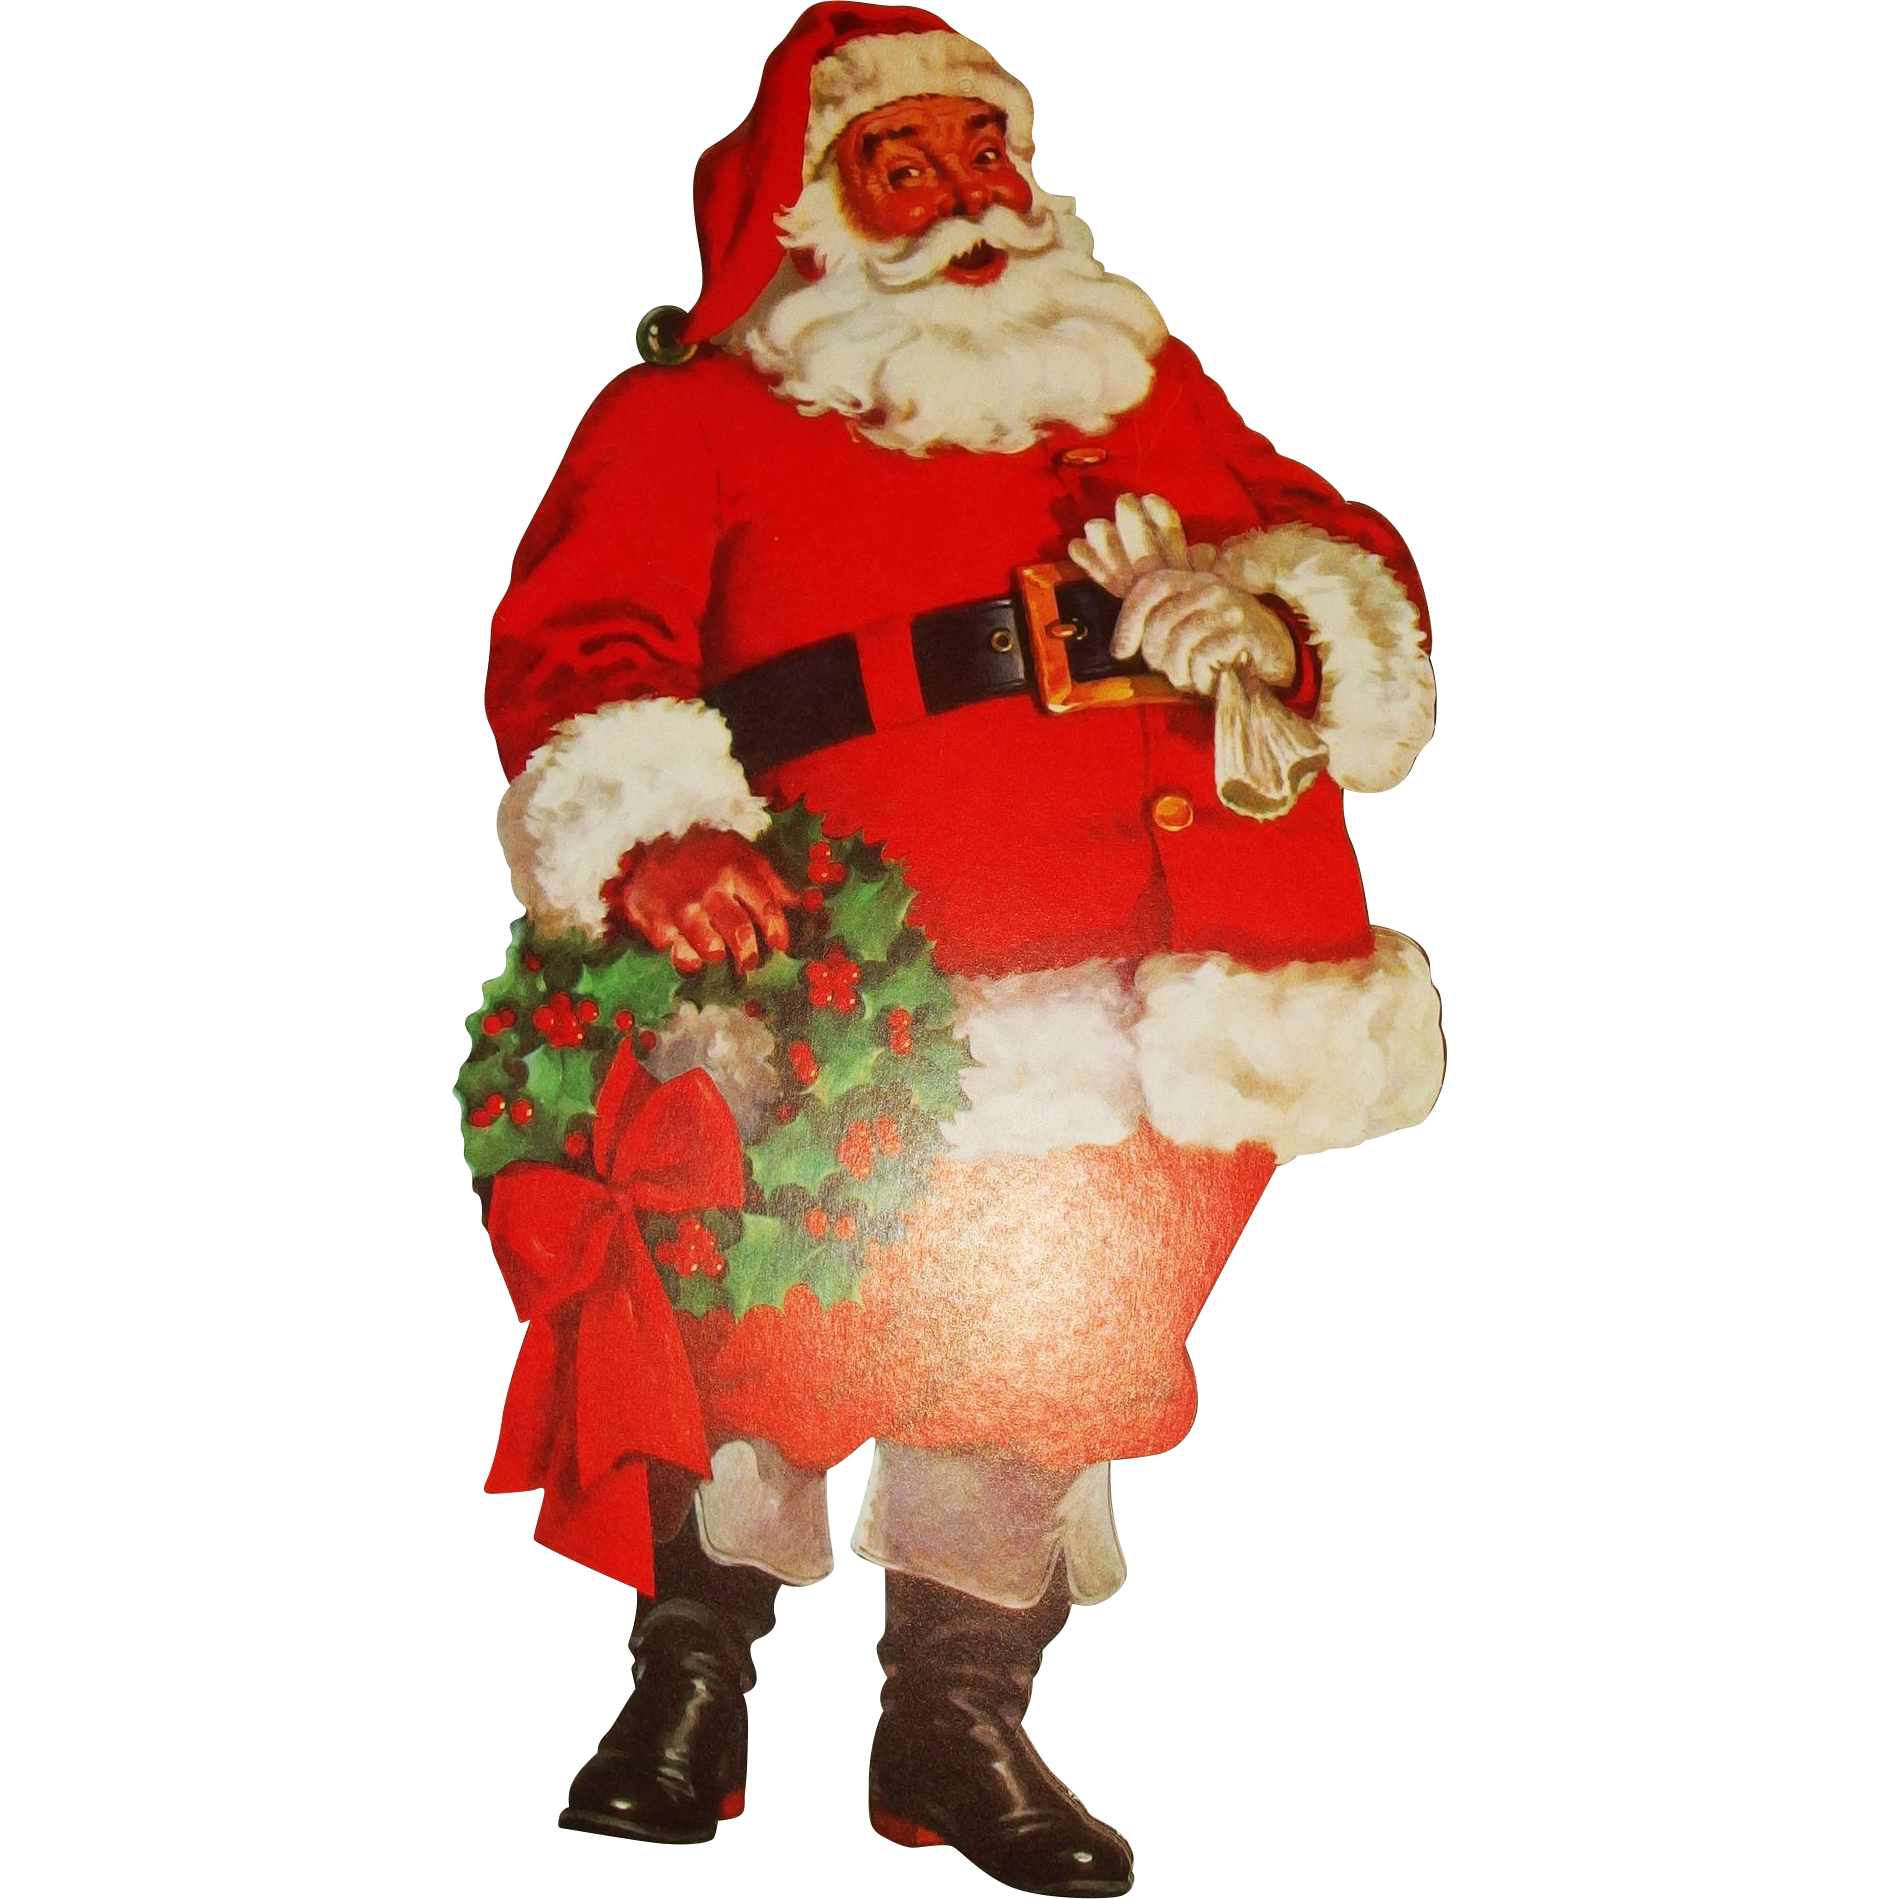 plastics foam general hei decor wid santa prod up p christmas claus light qlt decorations decoration mrs